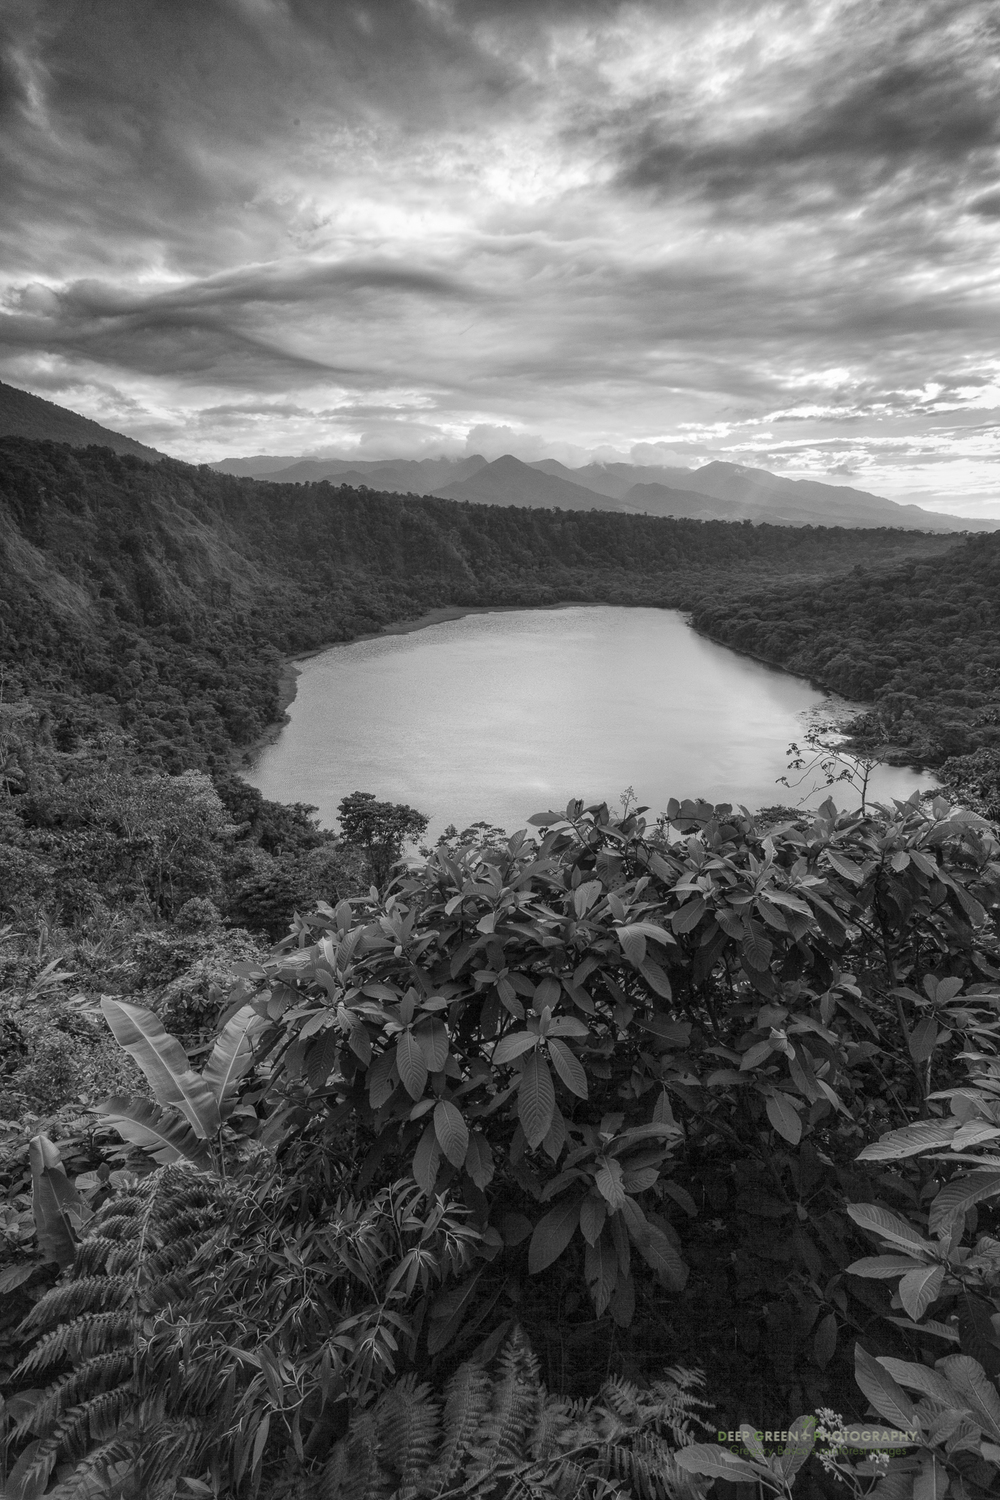 The Laguna Hule (Rubber Lake) is an extinct volcano crater just to the east of the Poas Volcano